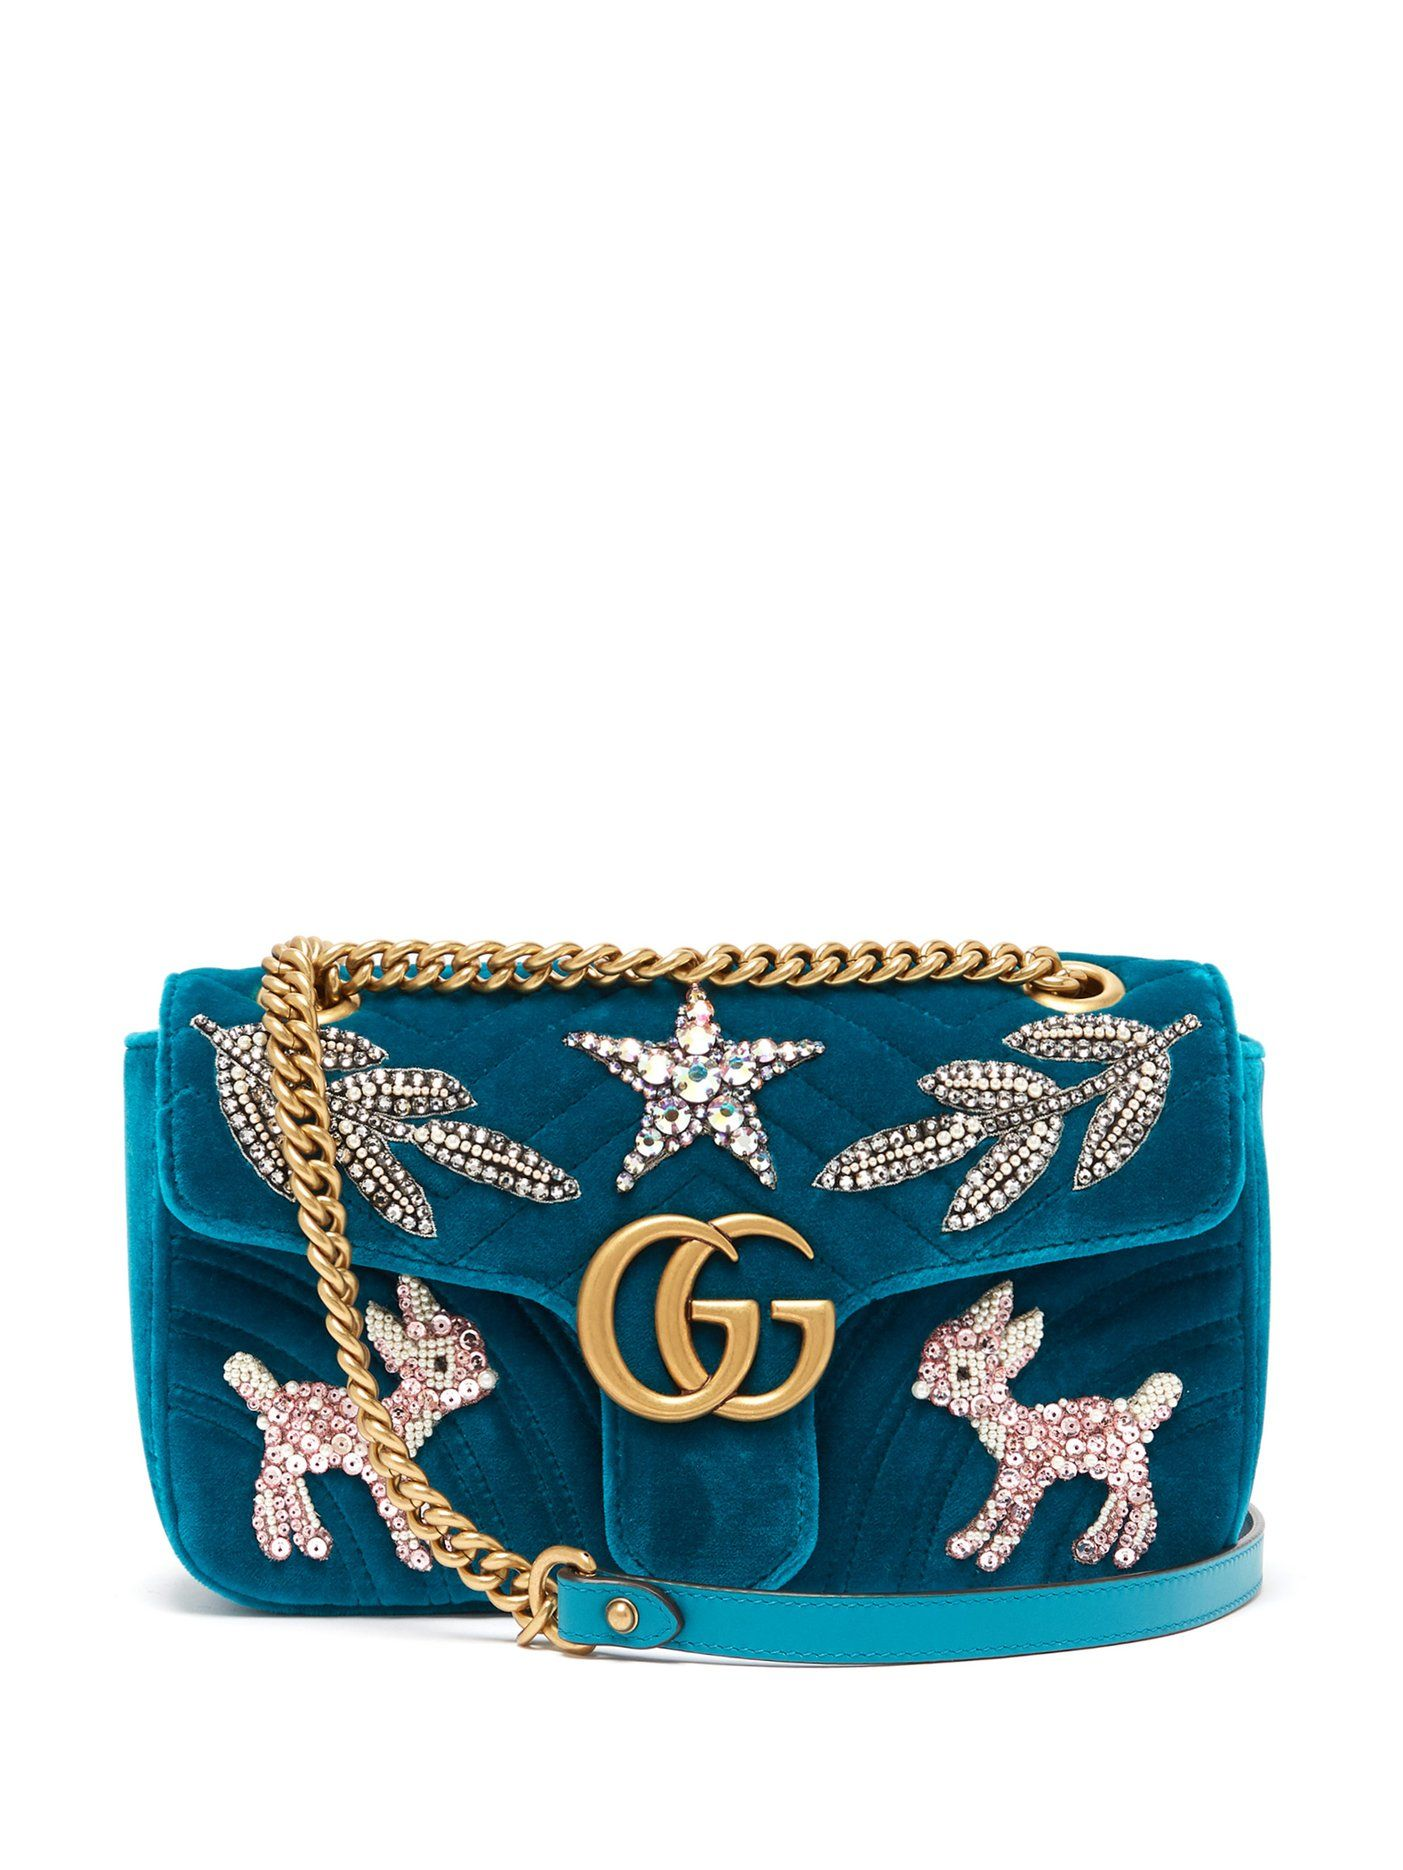 531e7ca2f21 GG Marmont small embellished velvet cross-body bag